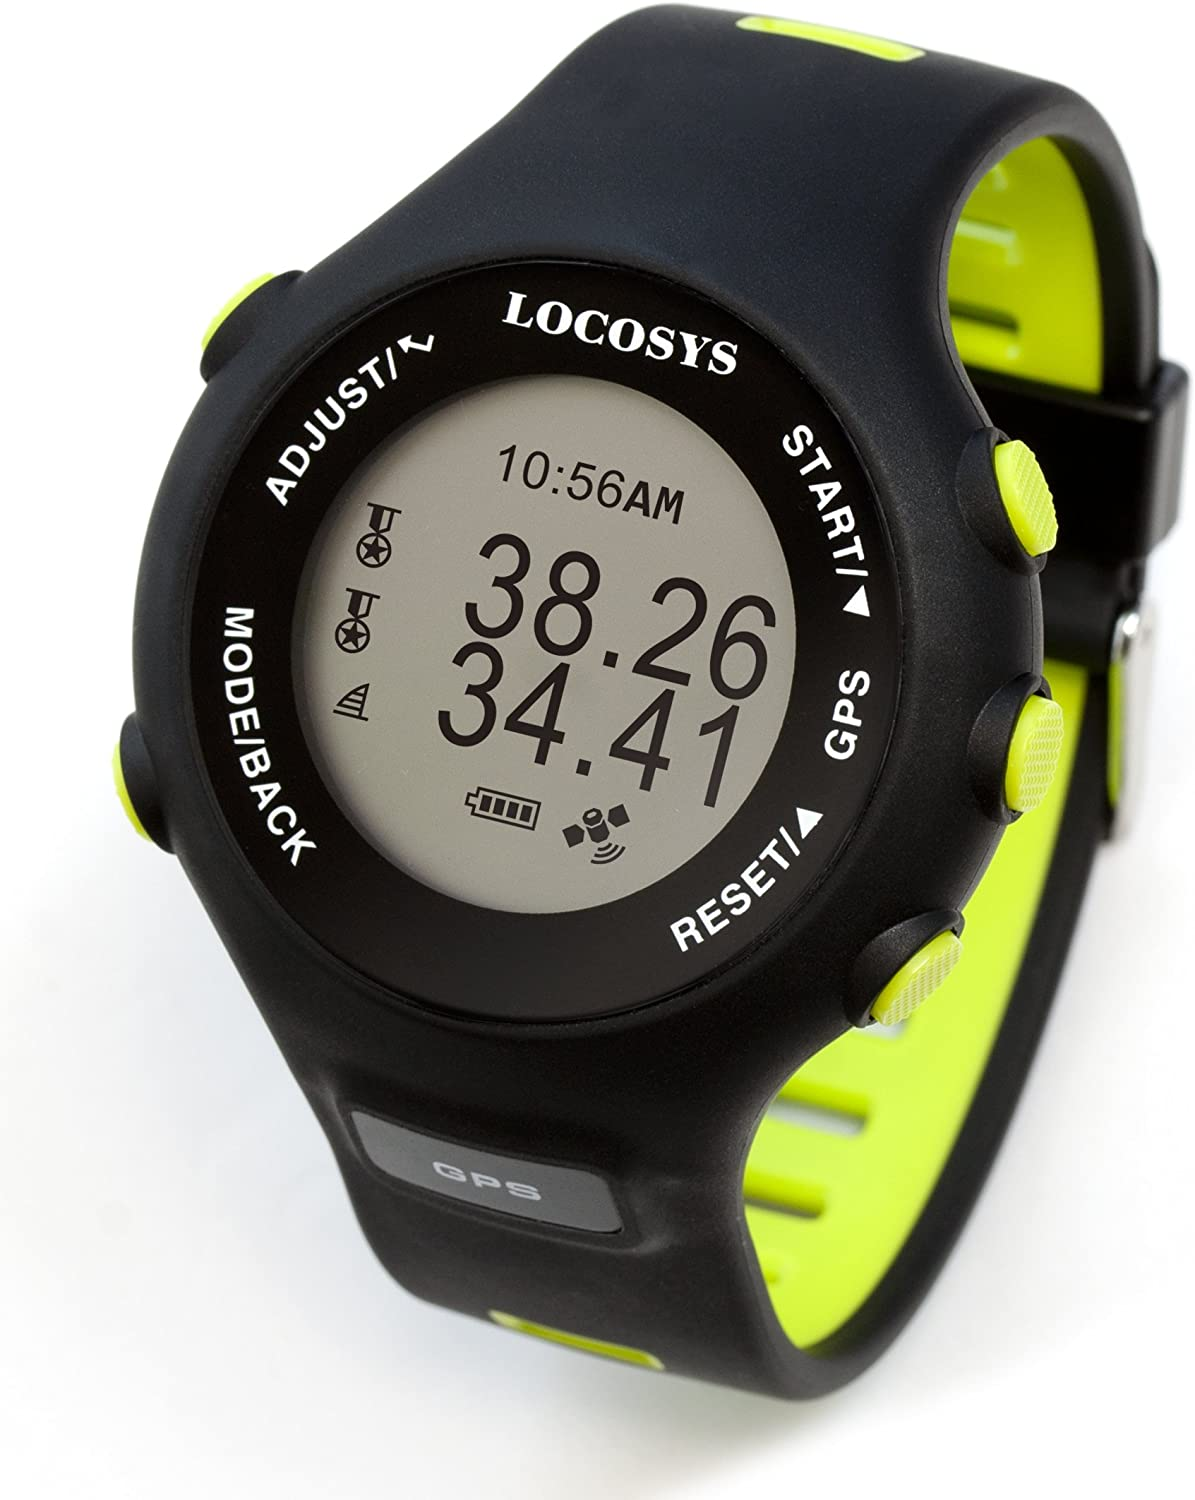 Locosys GW-60 GPS Watch (Highly Precise Speed Measurement for Windsurfing/Sailing)